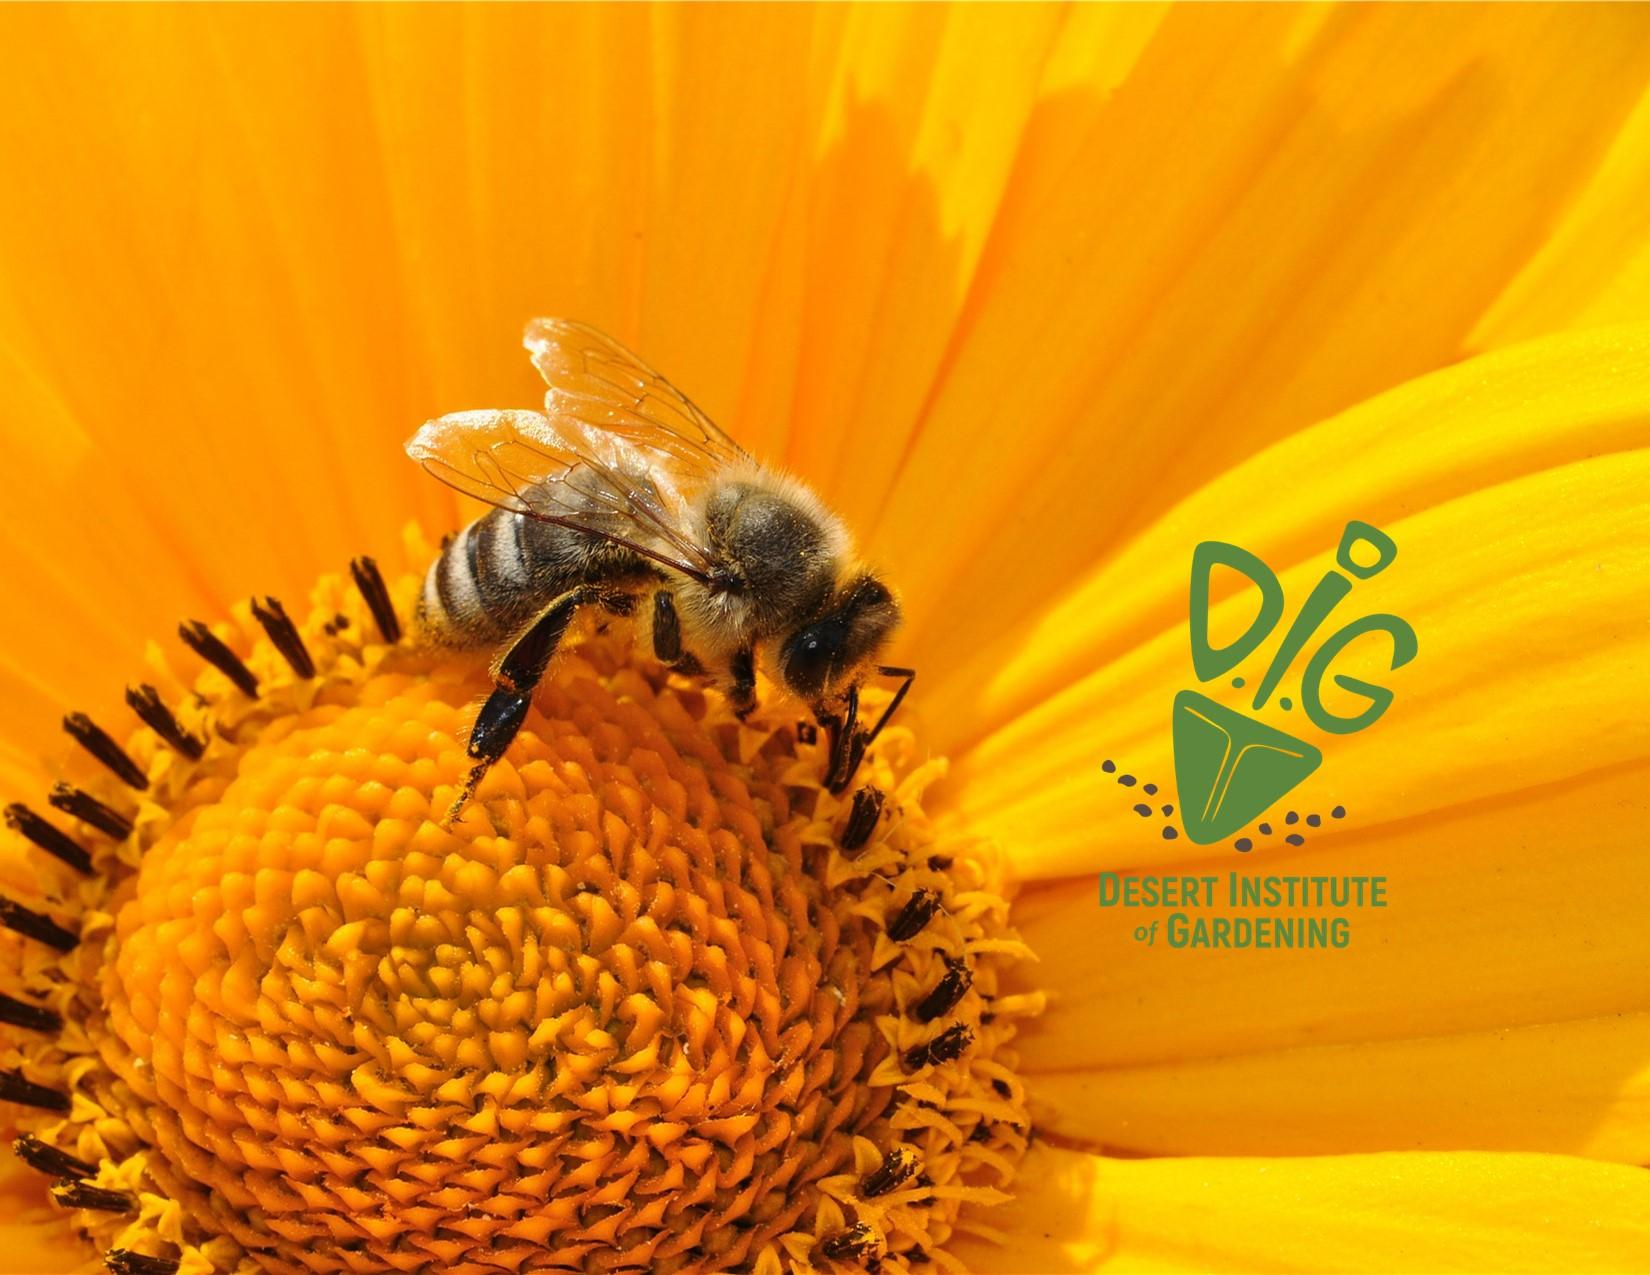 Desert Institute of Gardening: Buzz About Bees